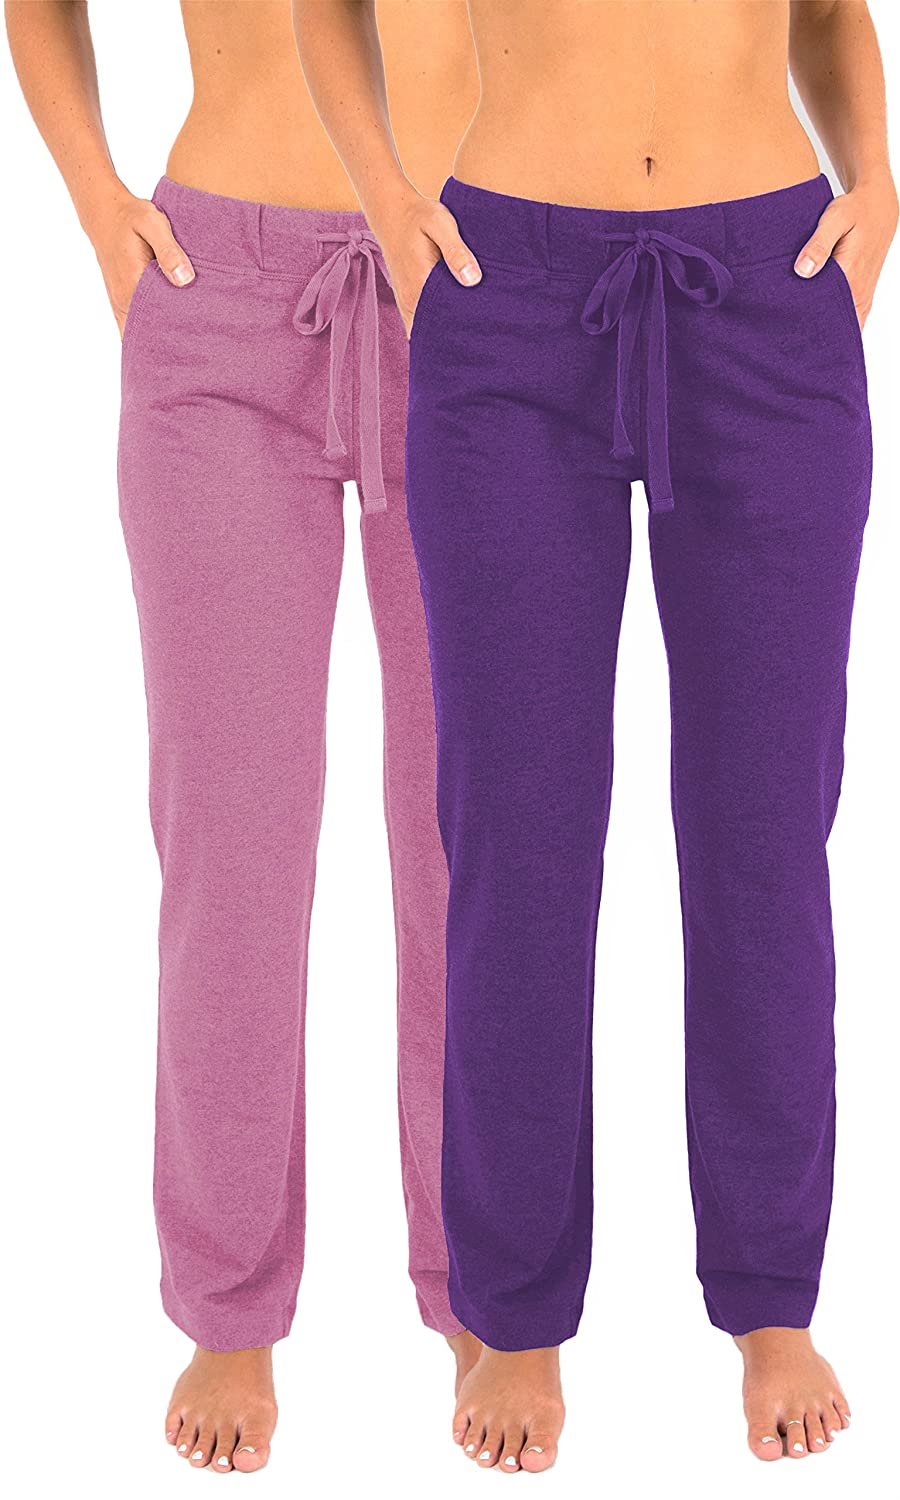 2 Pack Pink & Ultra purple Purple Sexy Basics Women's 2 Pack Ultra Soft French Terry Cotton Drawstring Yoga Lounge Long Pants